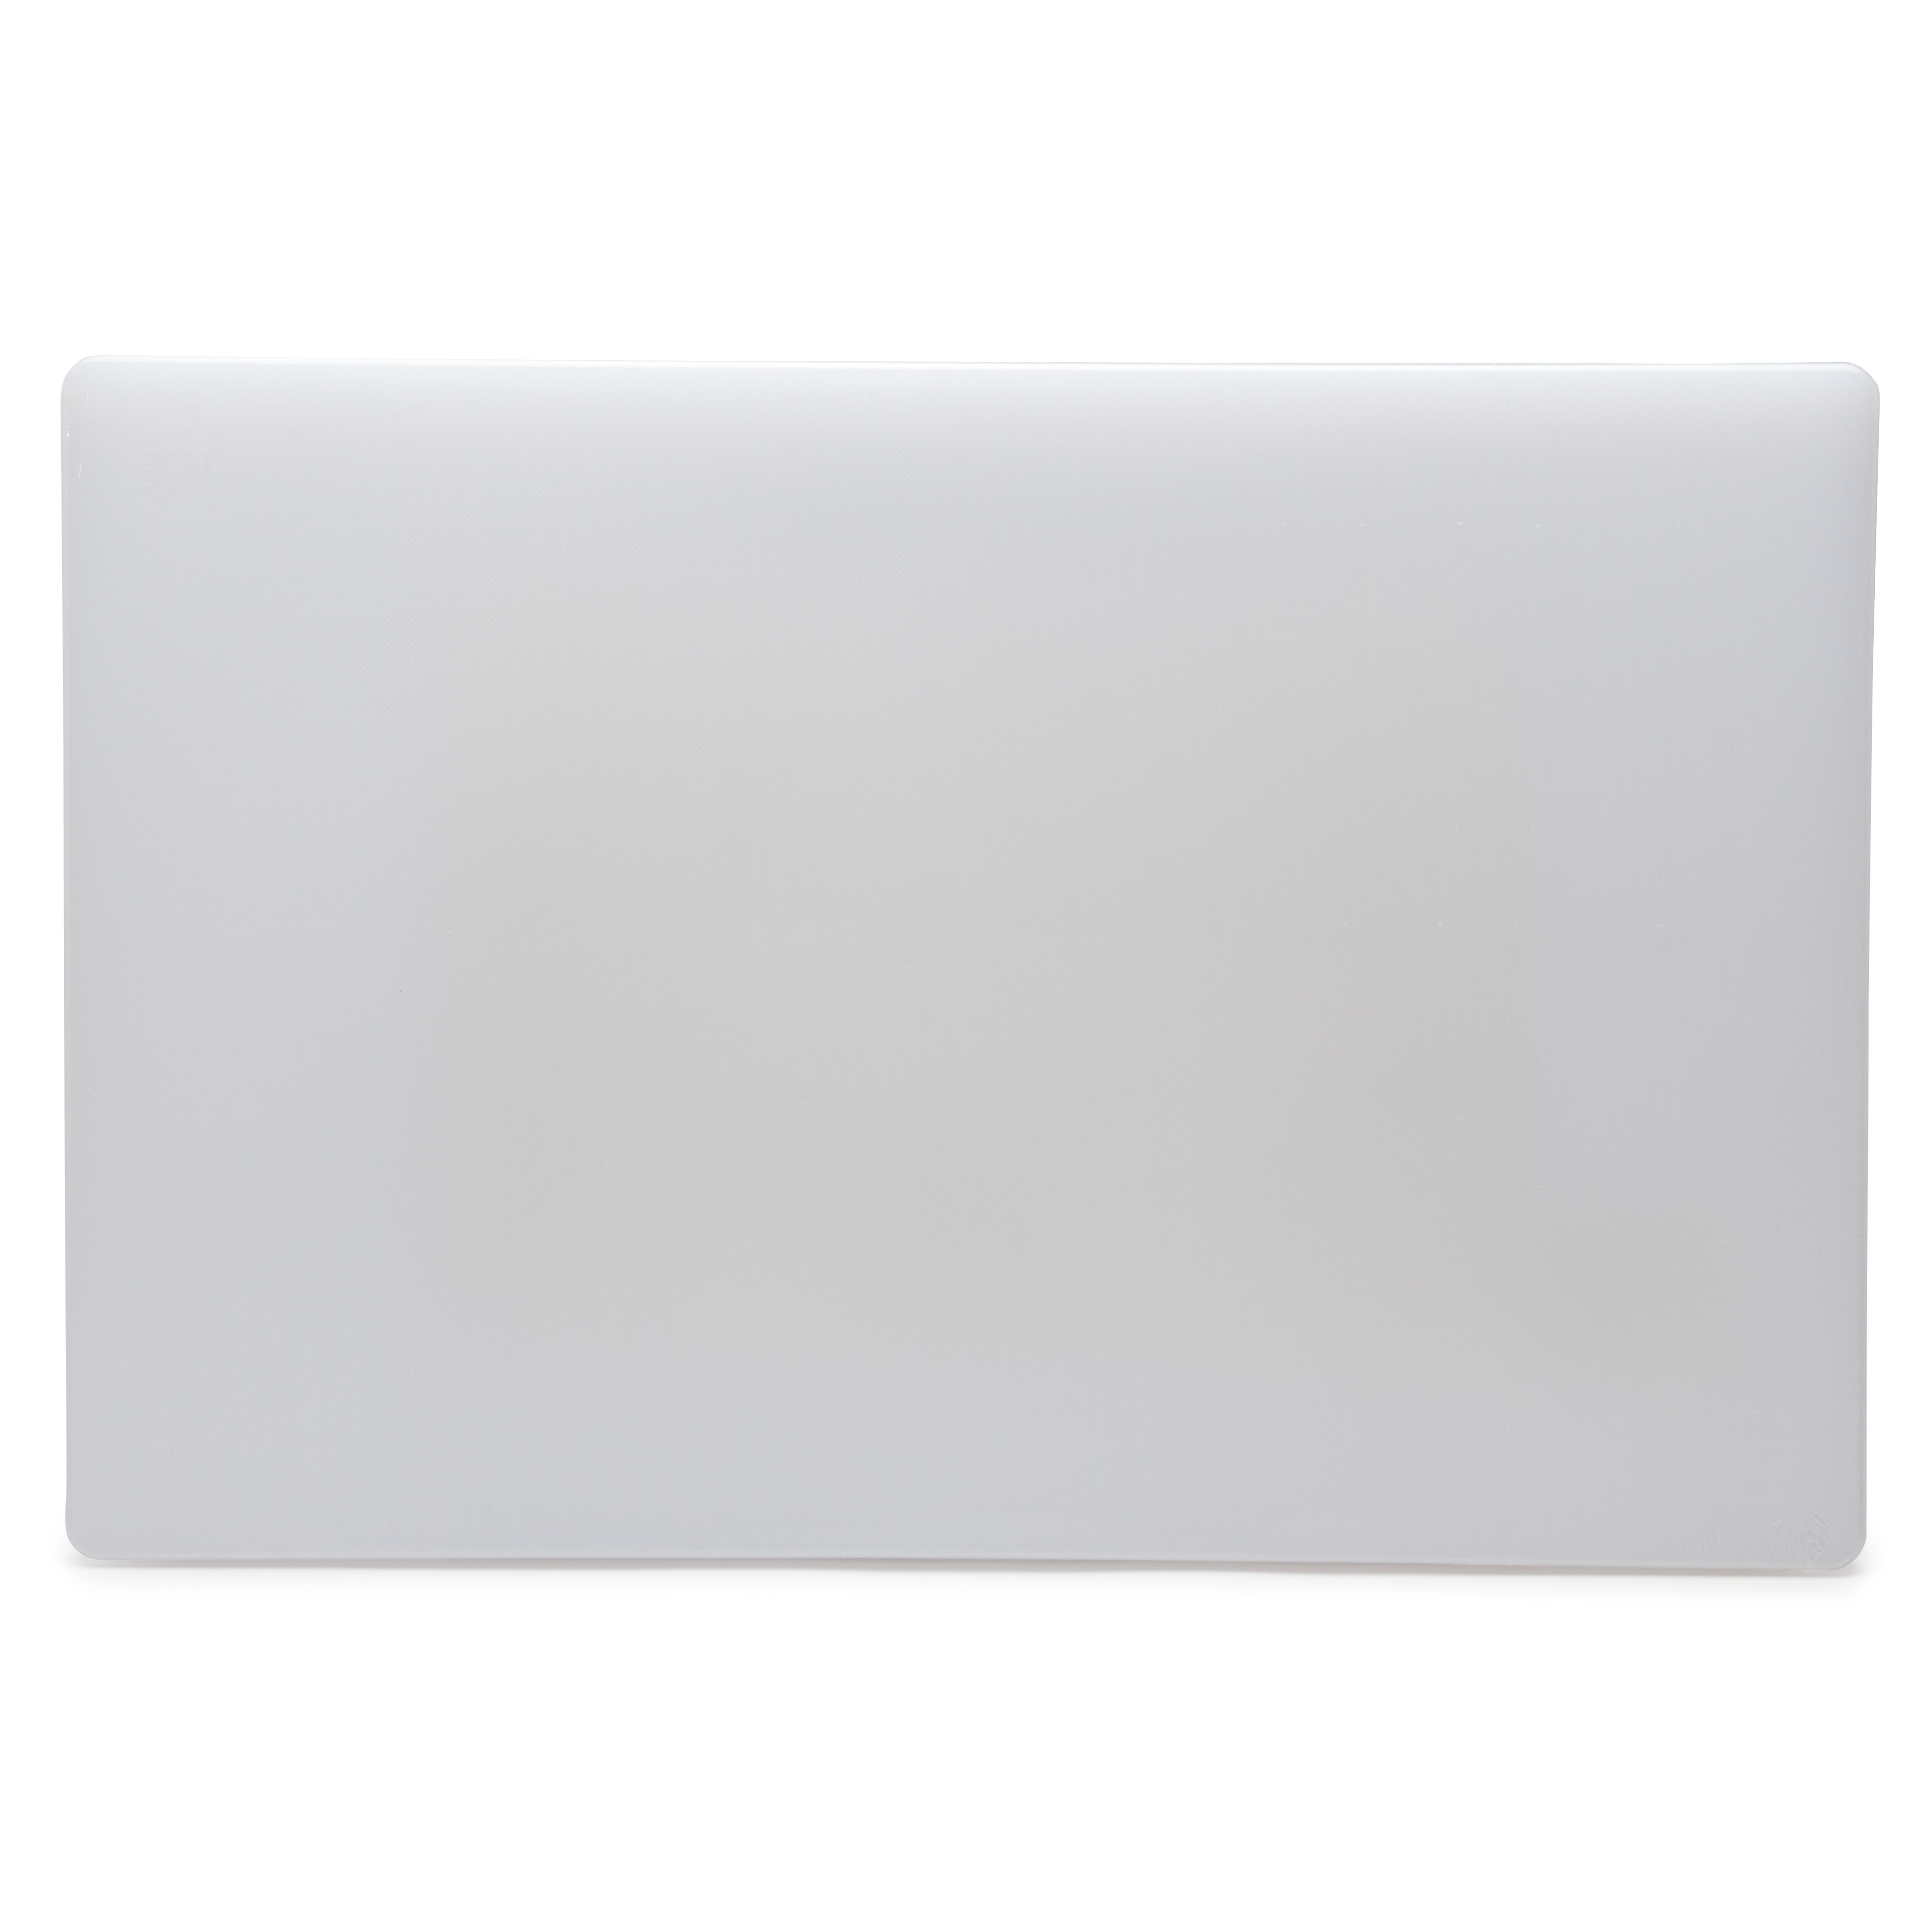 Royal Industries ROY CB 1830 cutting board, plastic